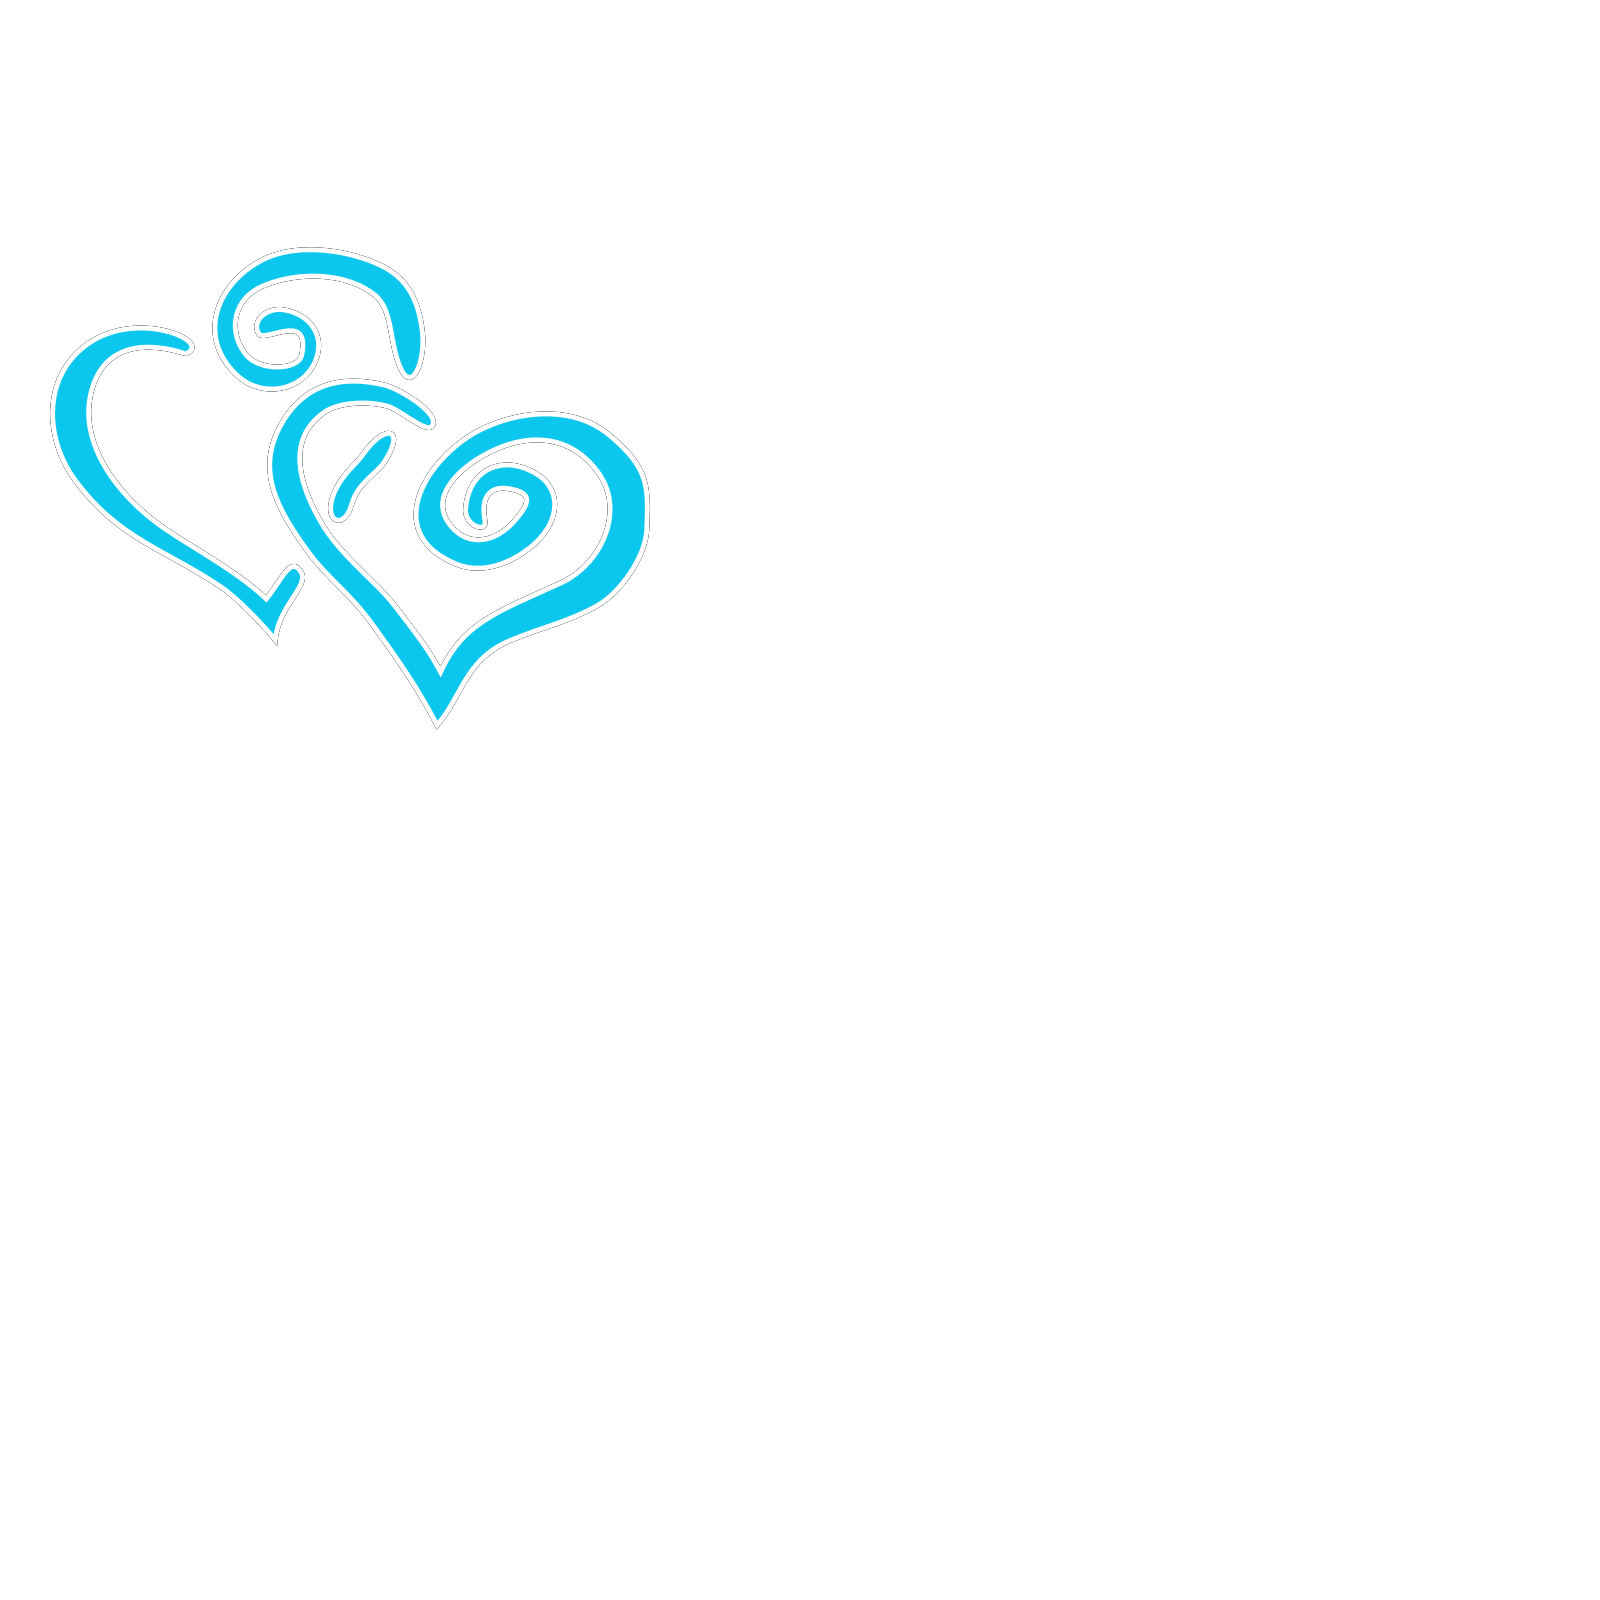 Intertwined Teal Hearts SVG Vector, Intertwined Teal ...